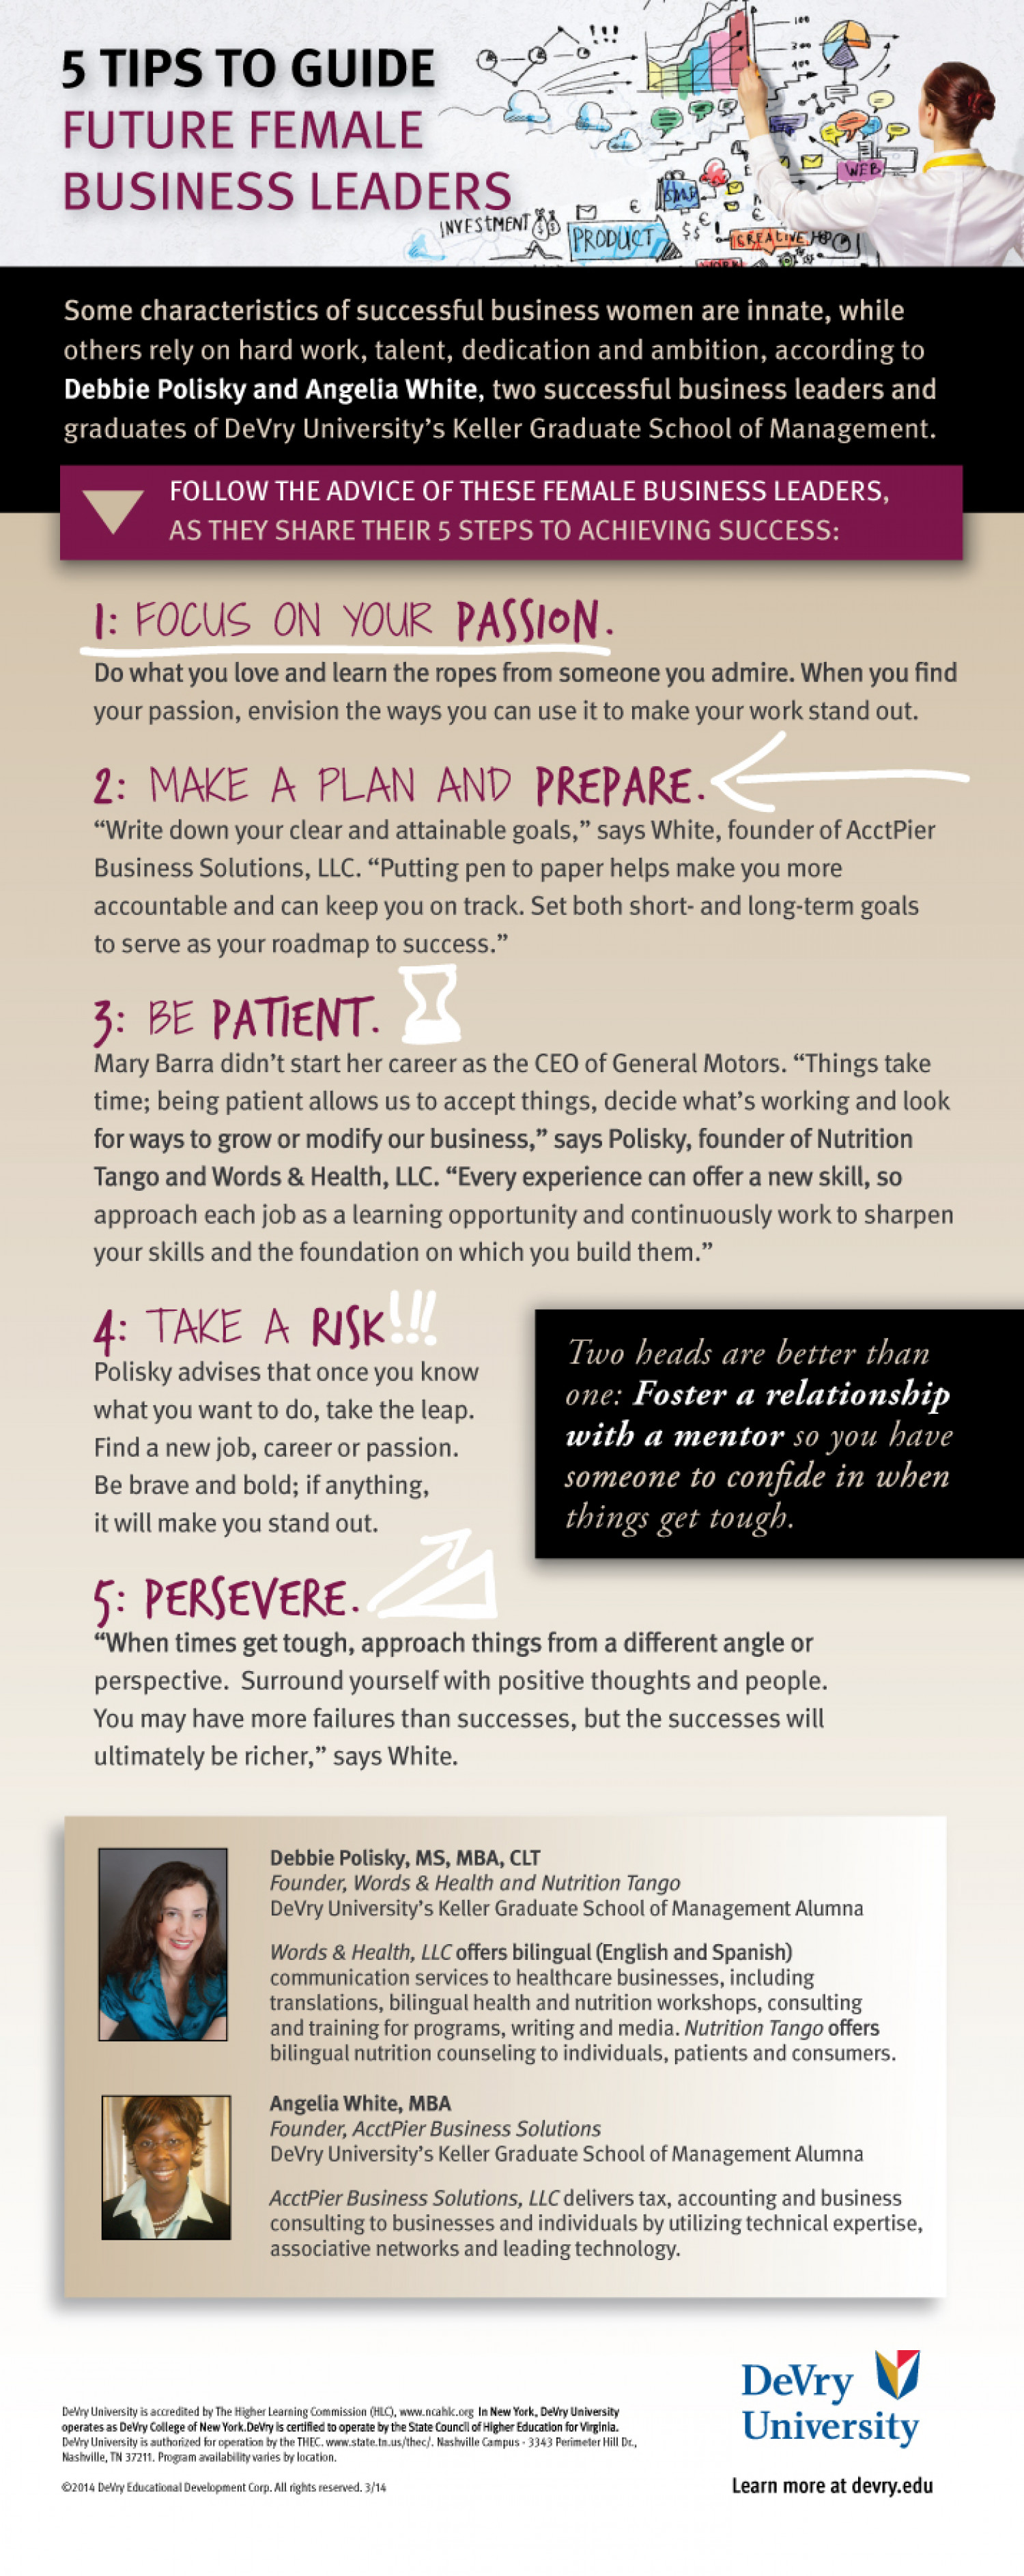 5 Tips to Guide Future Female Business Leaders  Infographic